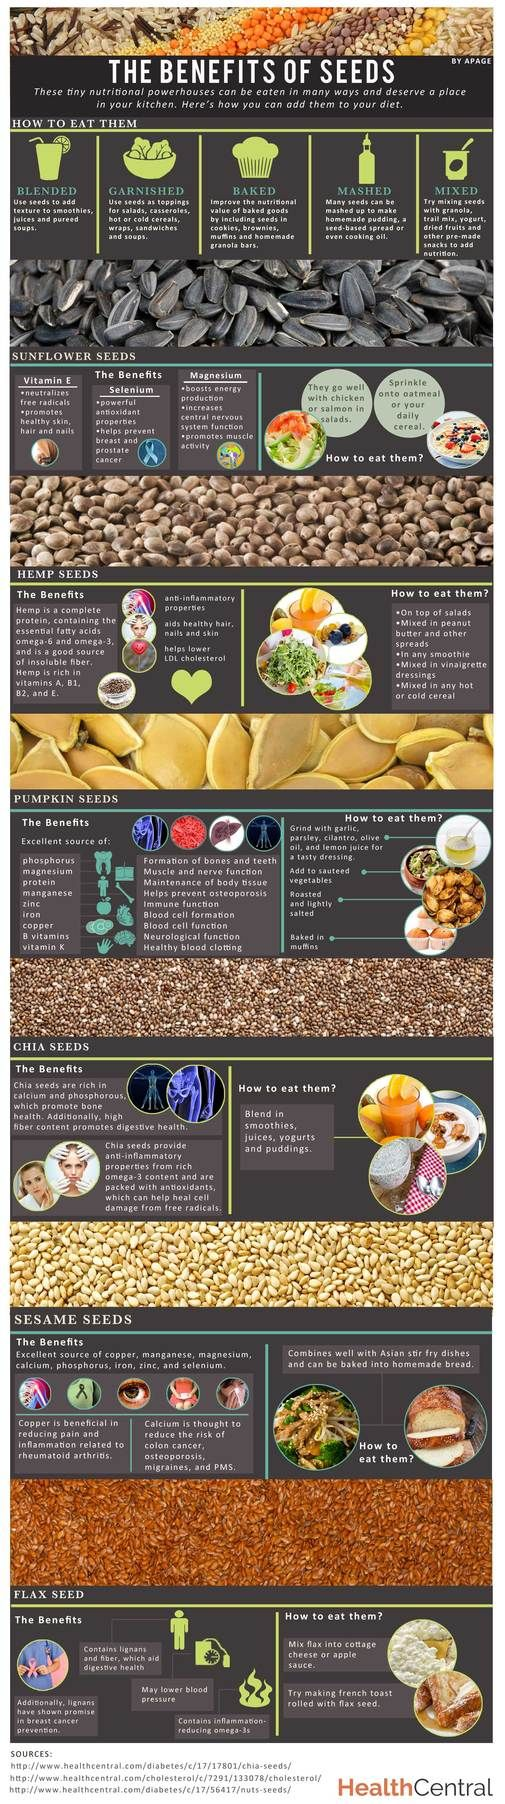 Seeds are small, but have plenty of #health benefits packed into them.